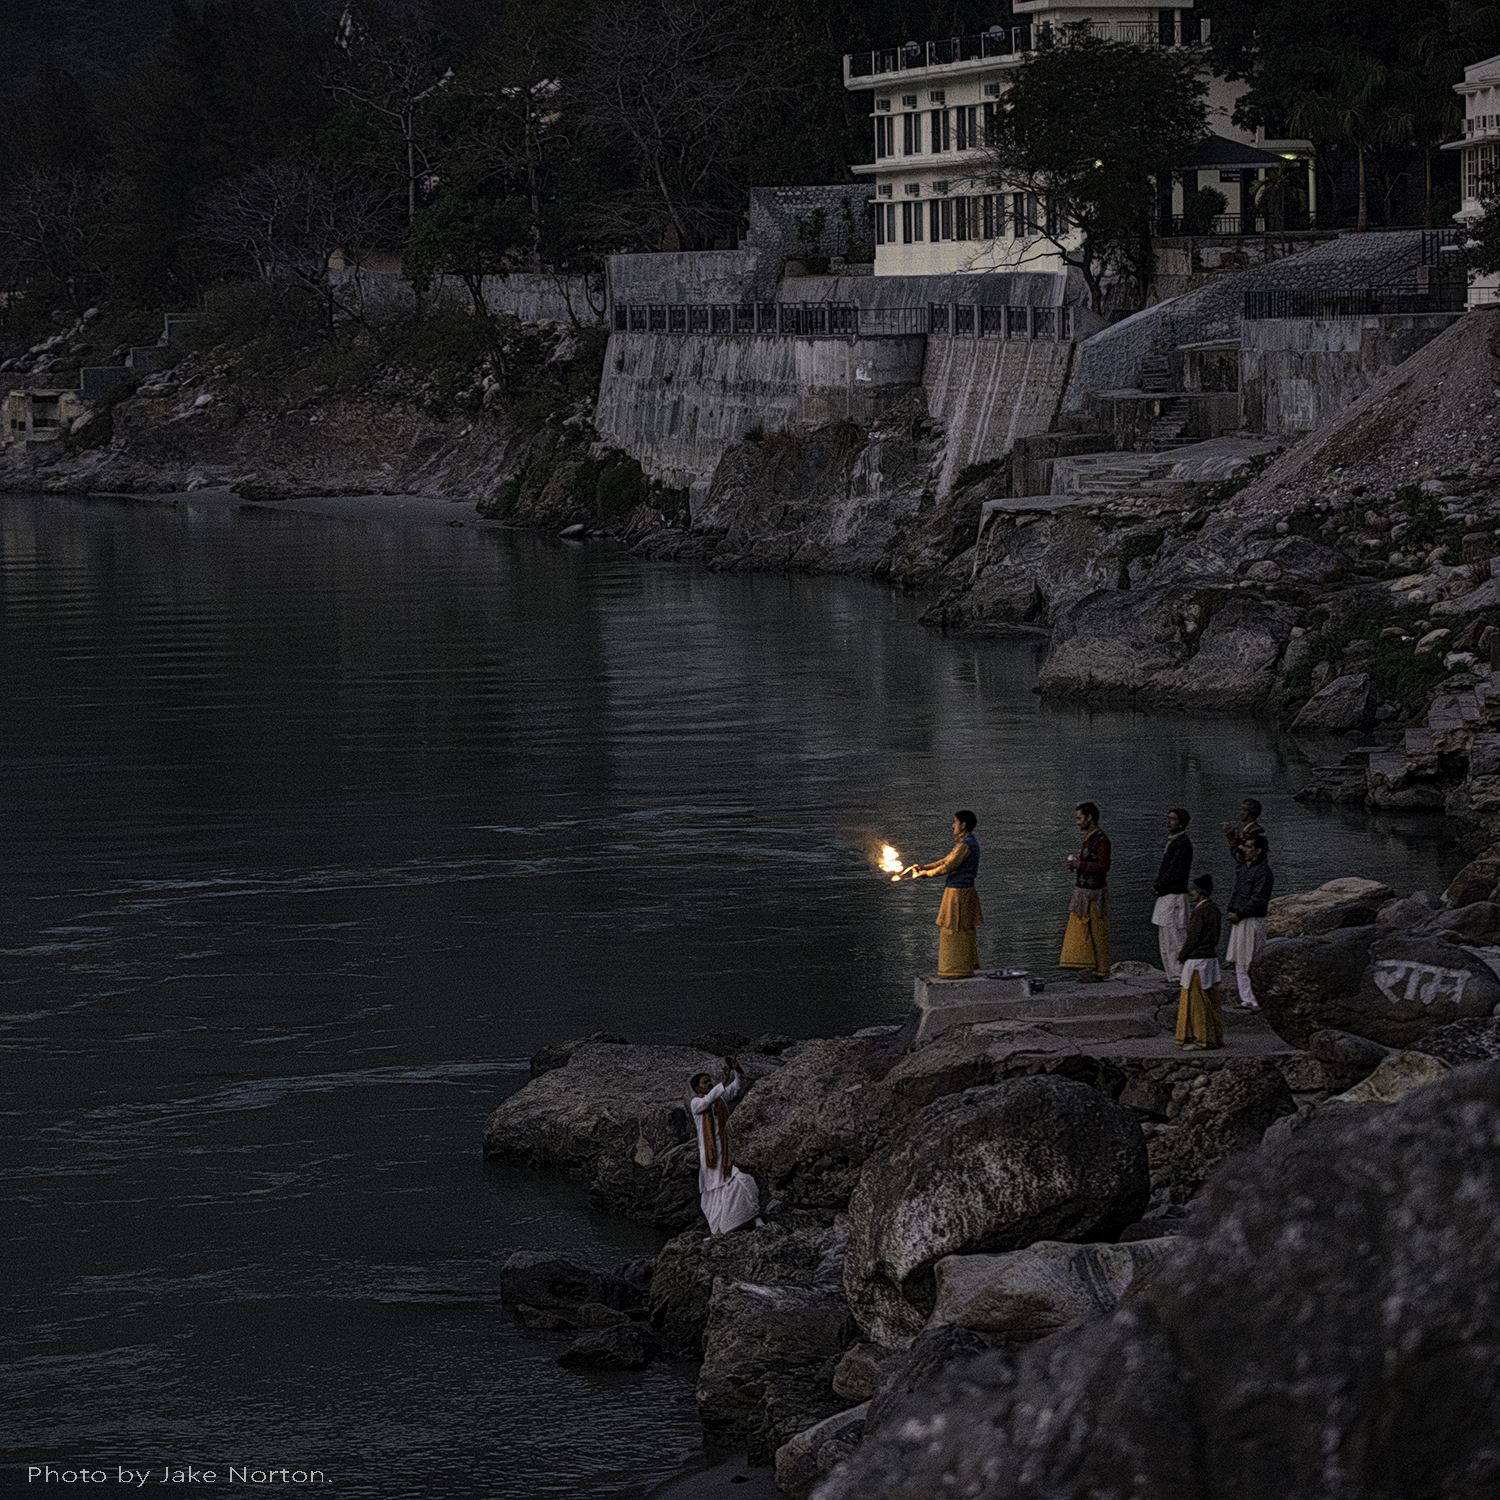 The faithful perform Ganga aarti along the banks of the Ganges River at Rishikesh, Uttarakhand, India.